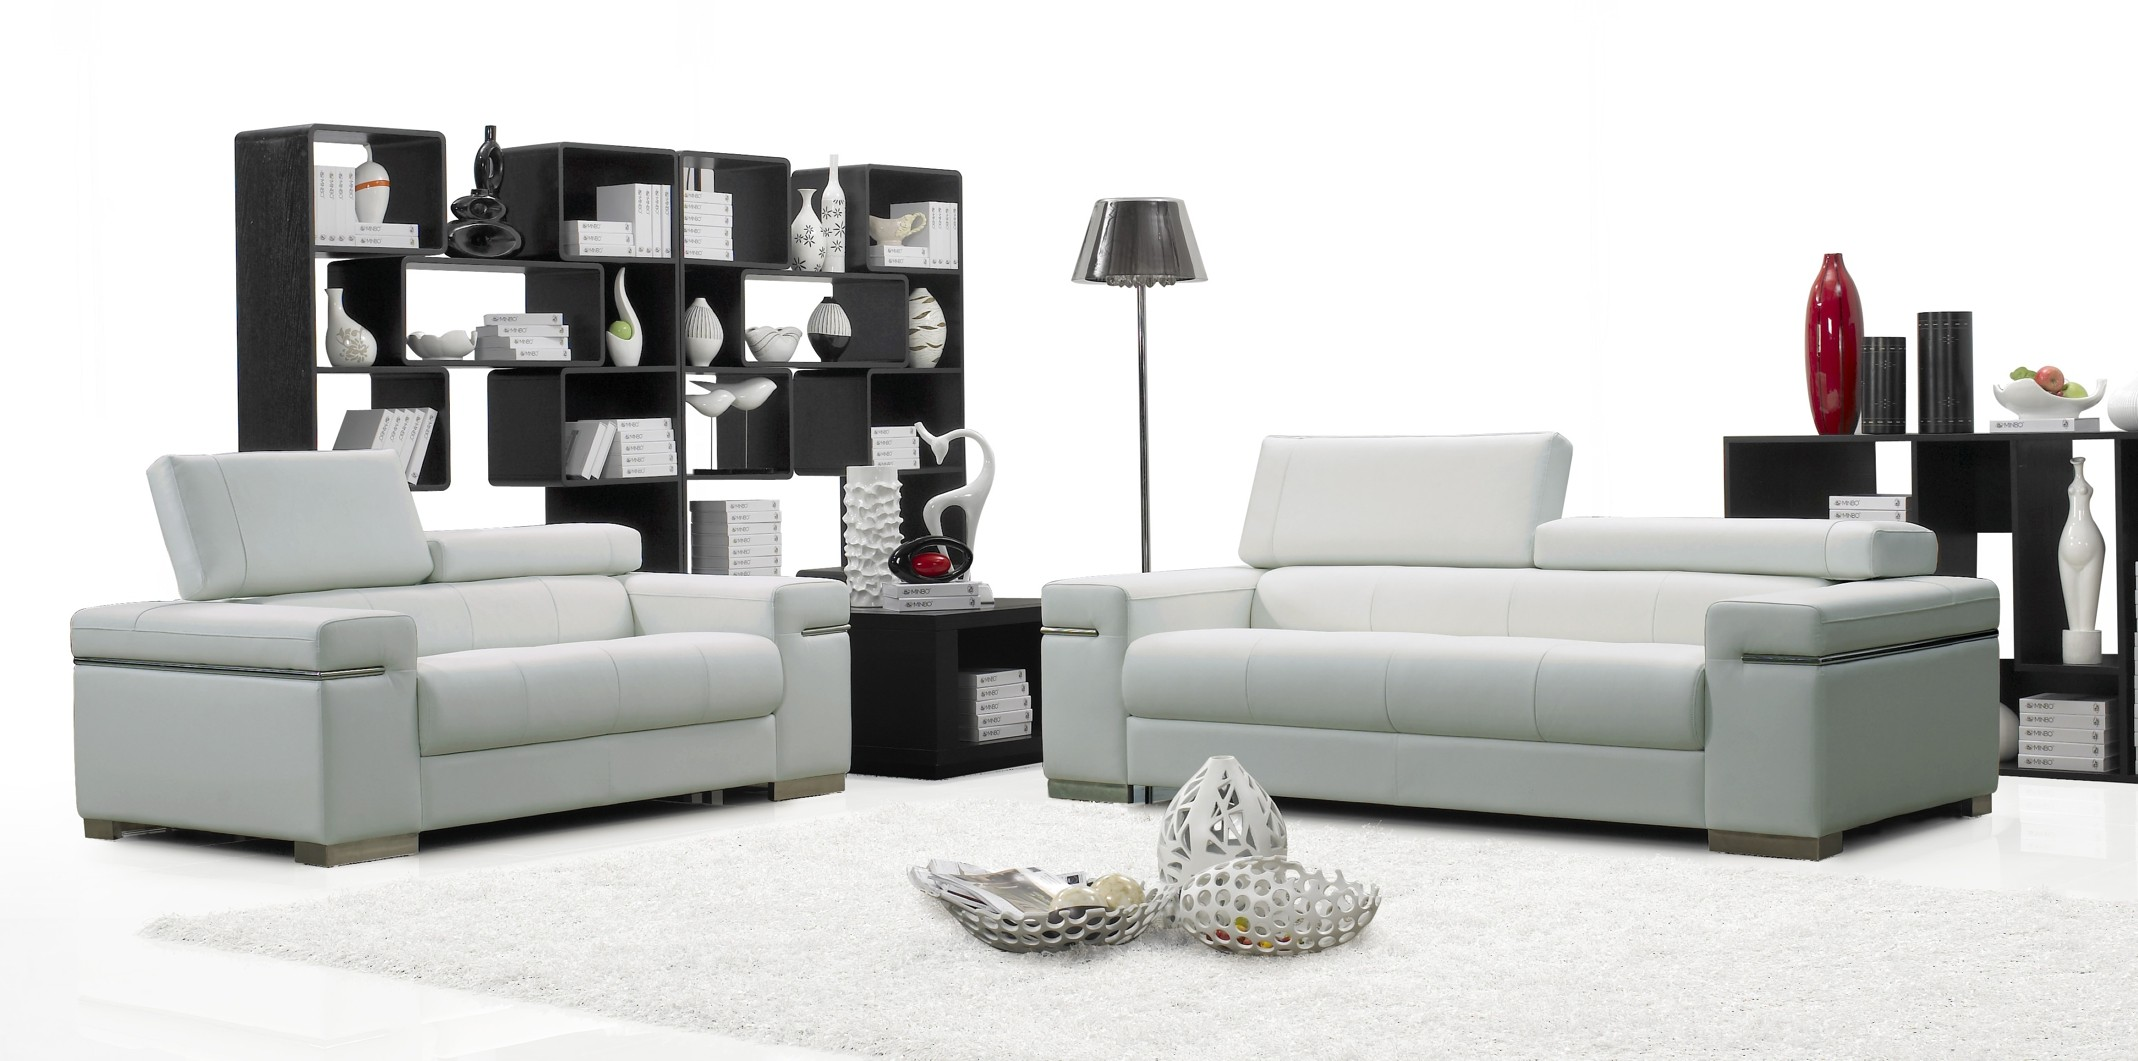 Modern sofa sets white modern sofa set vg 74 leather sofas for Modern apartment furniture ideas